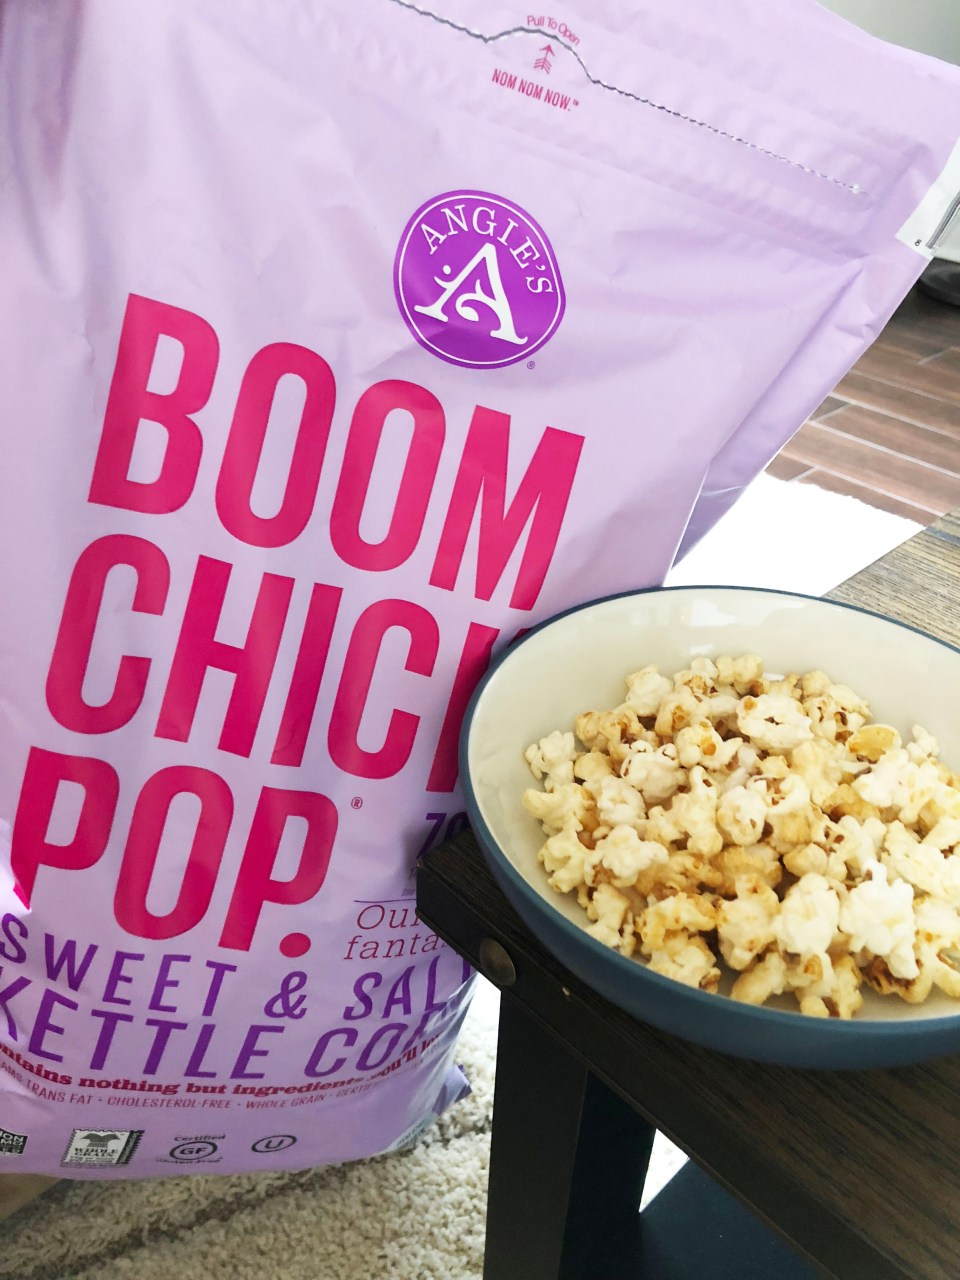 Boom Chicka Pop Kettle Corn